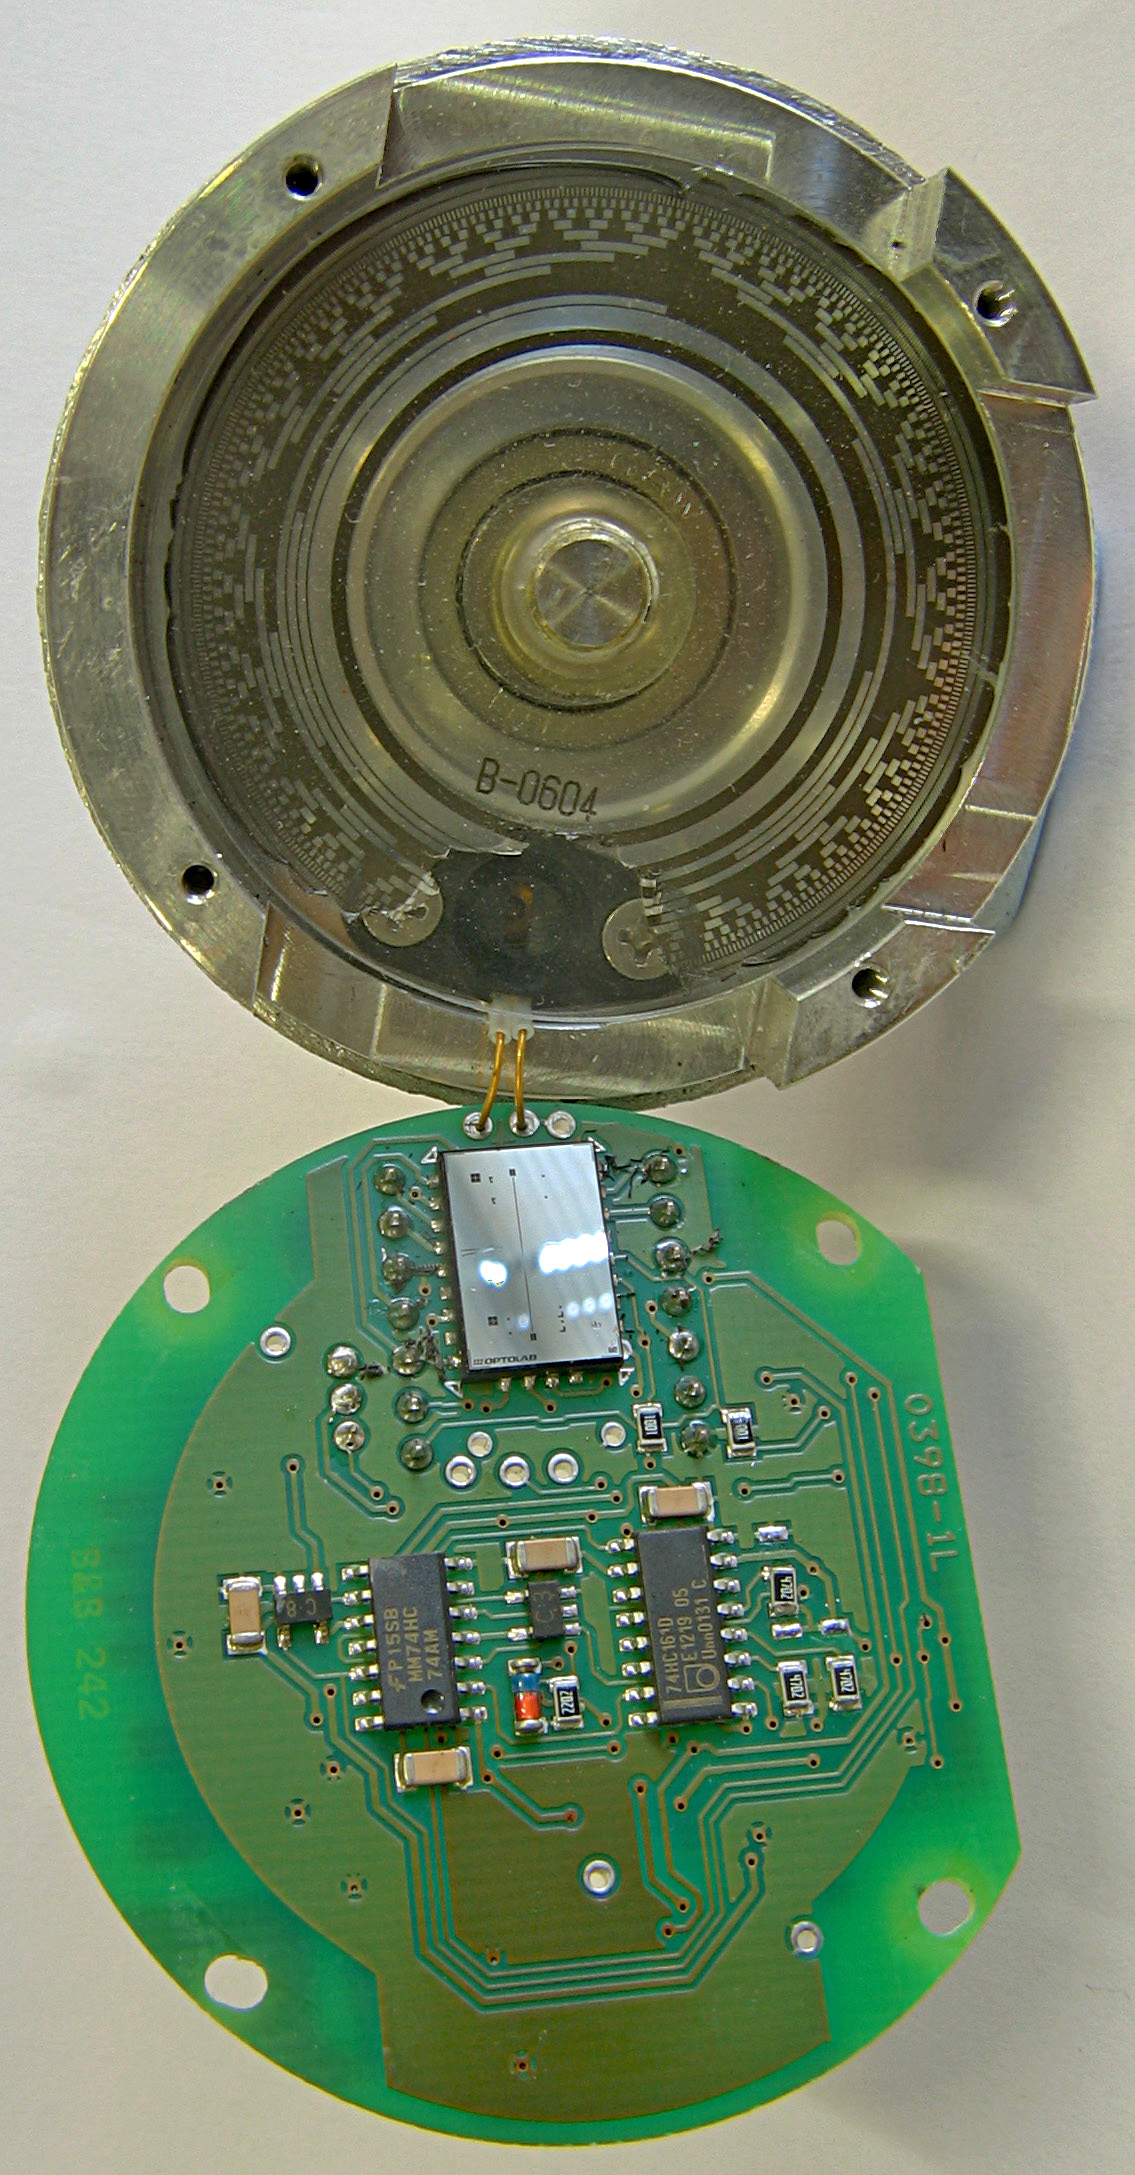 Rotary Encoder Wikipedia The Circuit Above Is A Light Sensor That Means Must Shine Into